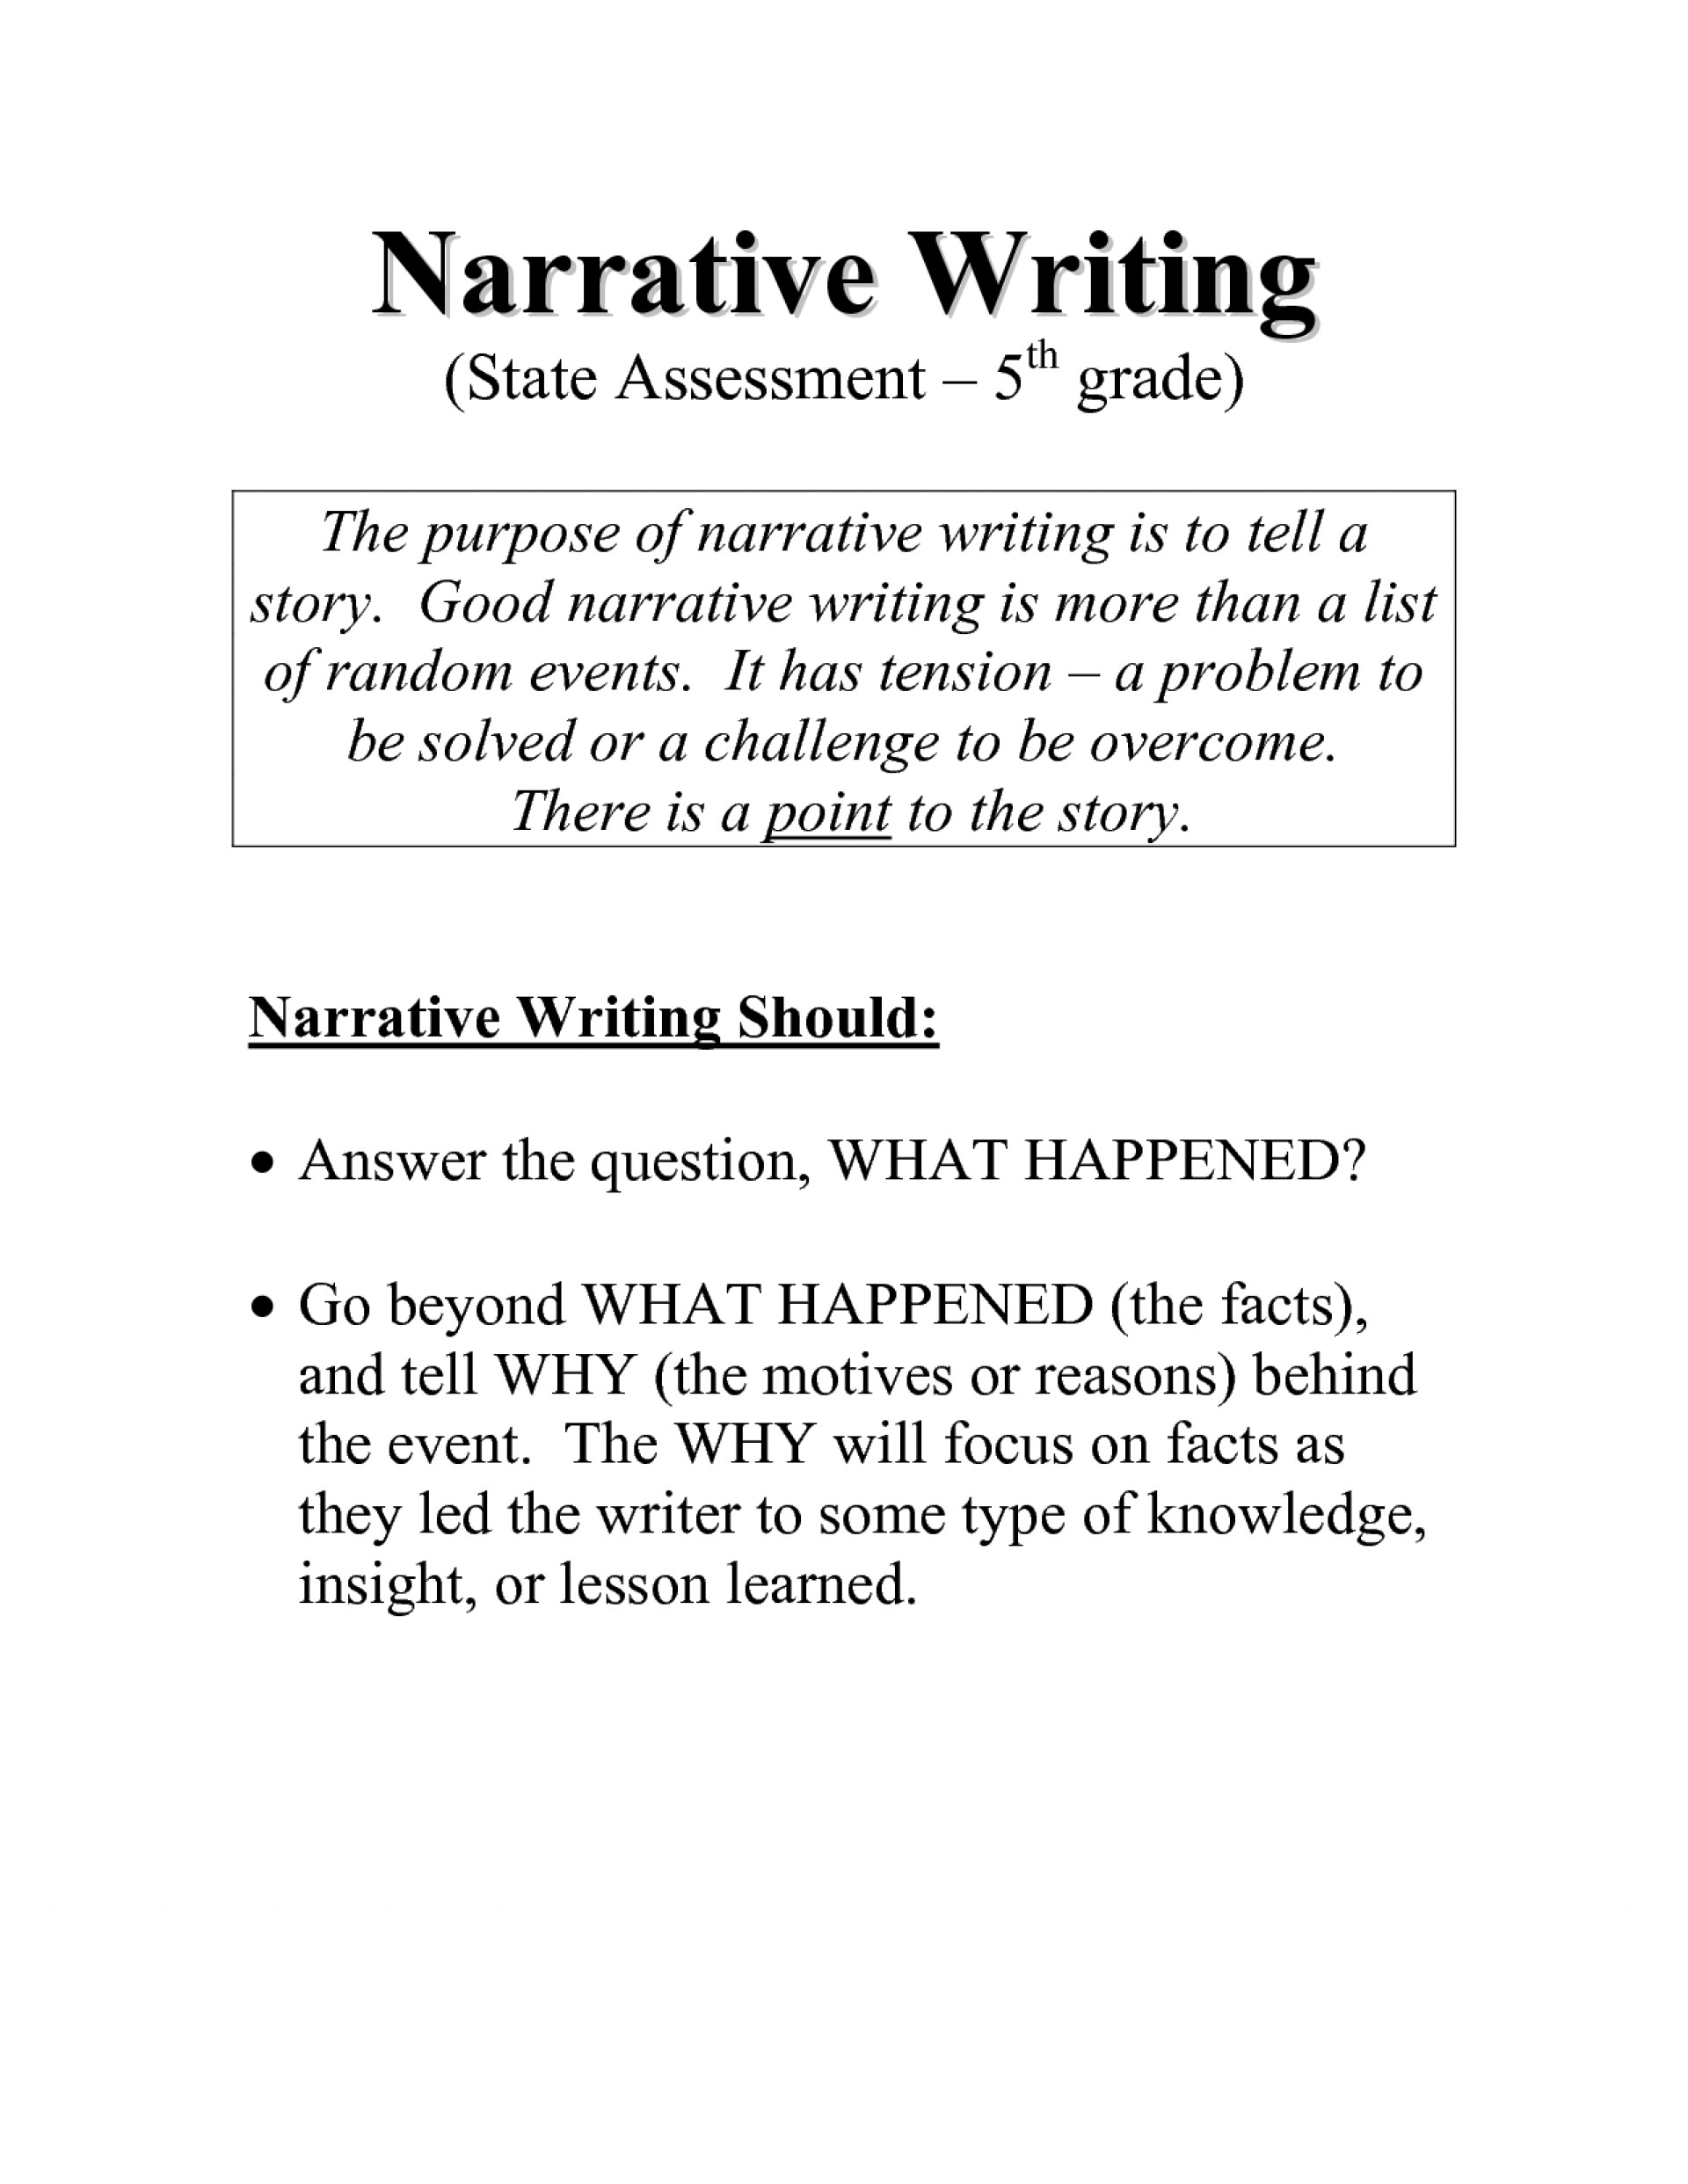 002 Writing Narrative Essay Outline Sample Actor Resume Beginner Prompts For Essays Best College Persuasive Opinion 4th Grade 1920